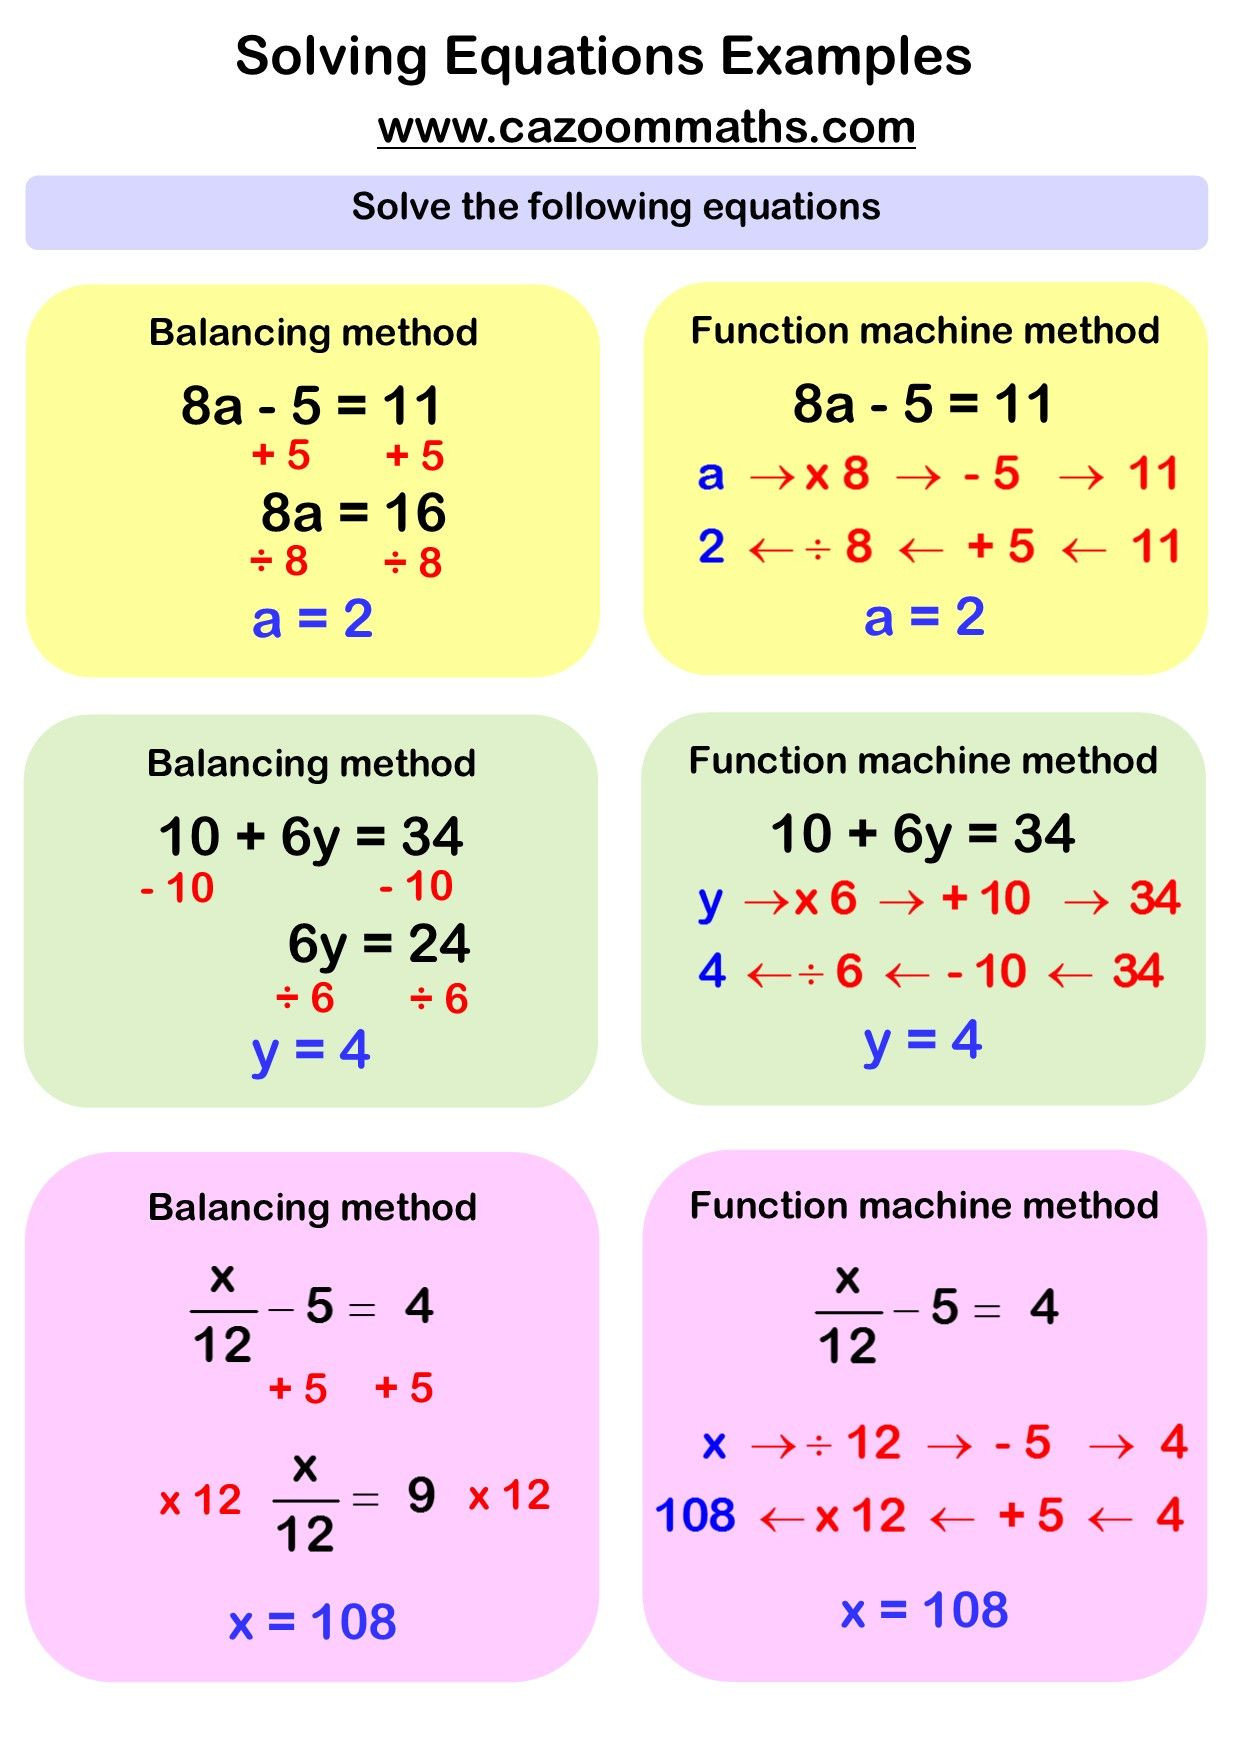 Solving Equations with Fractions Worksheet solving Equations Worksheets